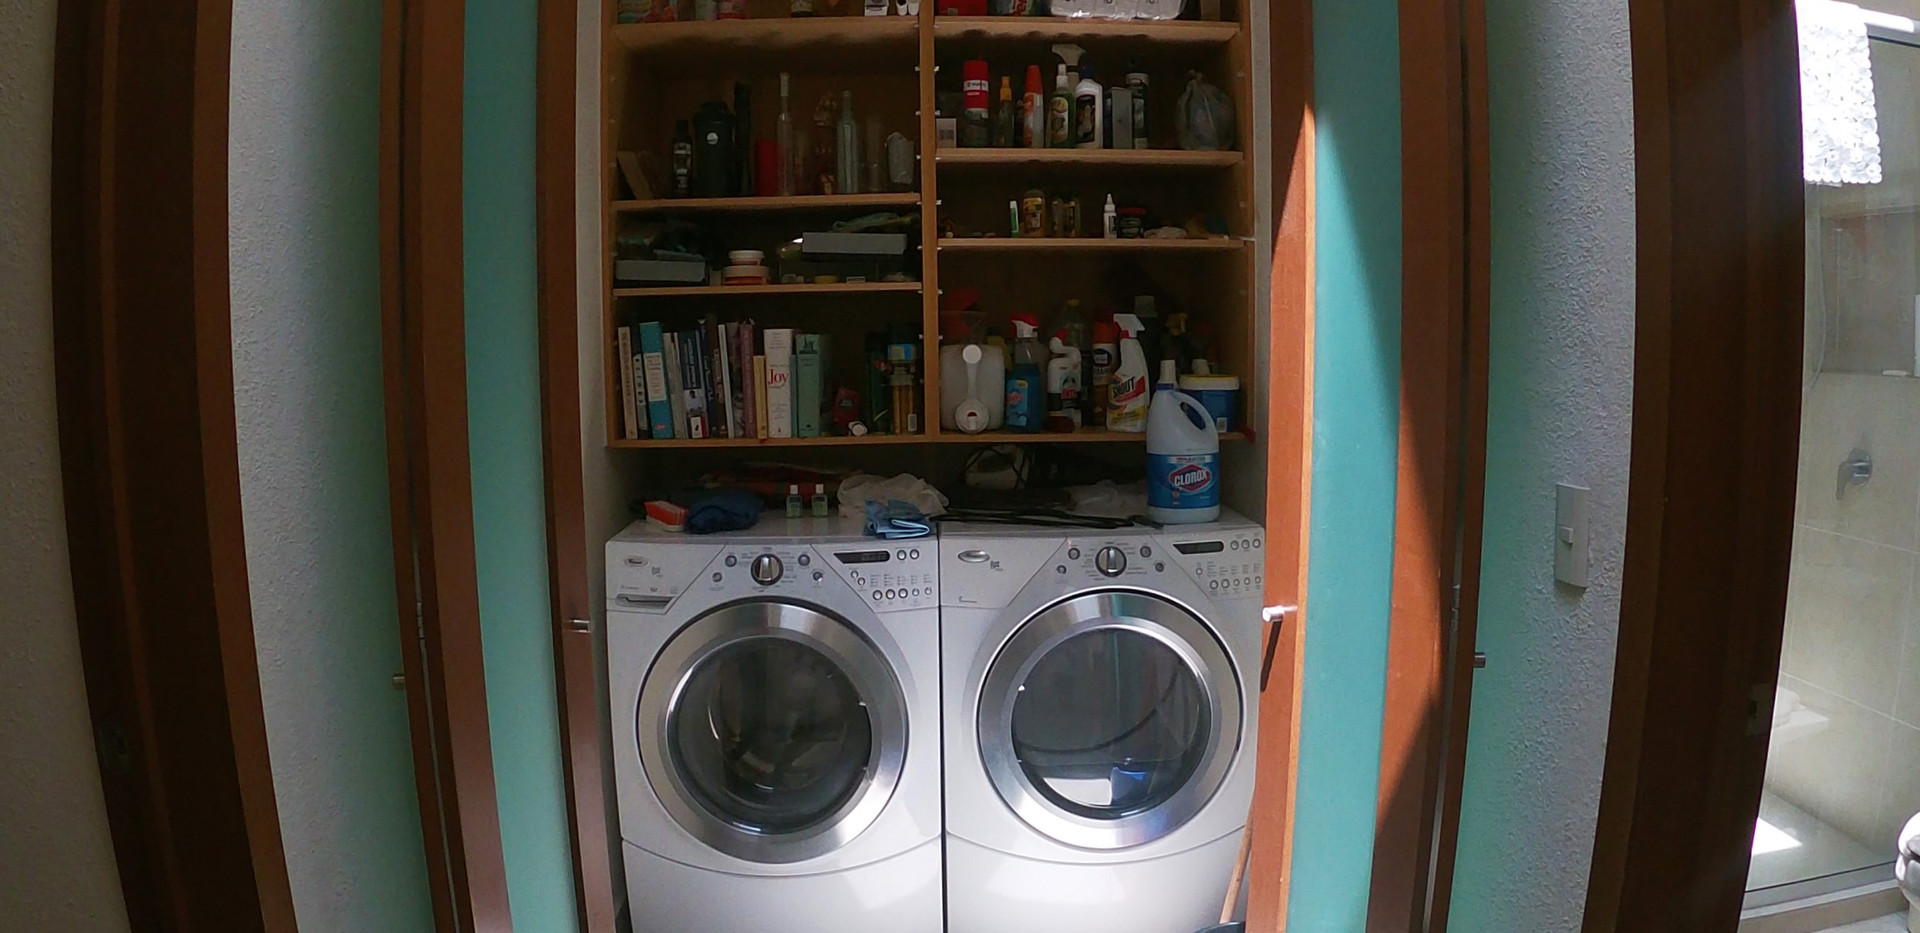 Launfry with appliances